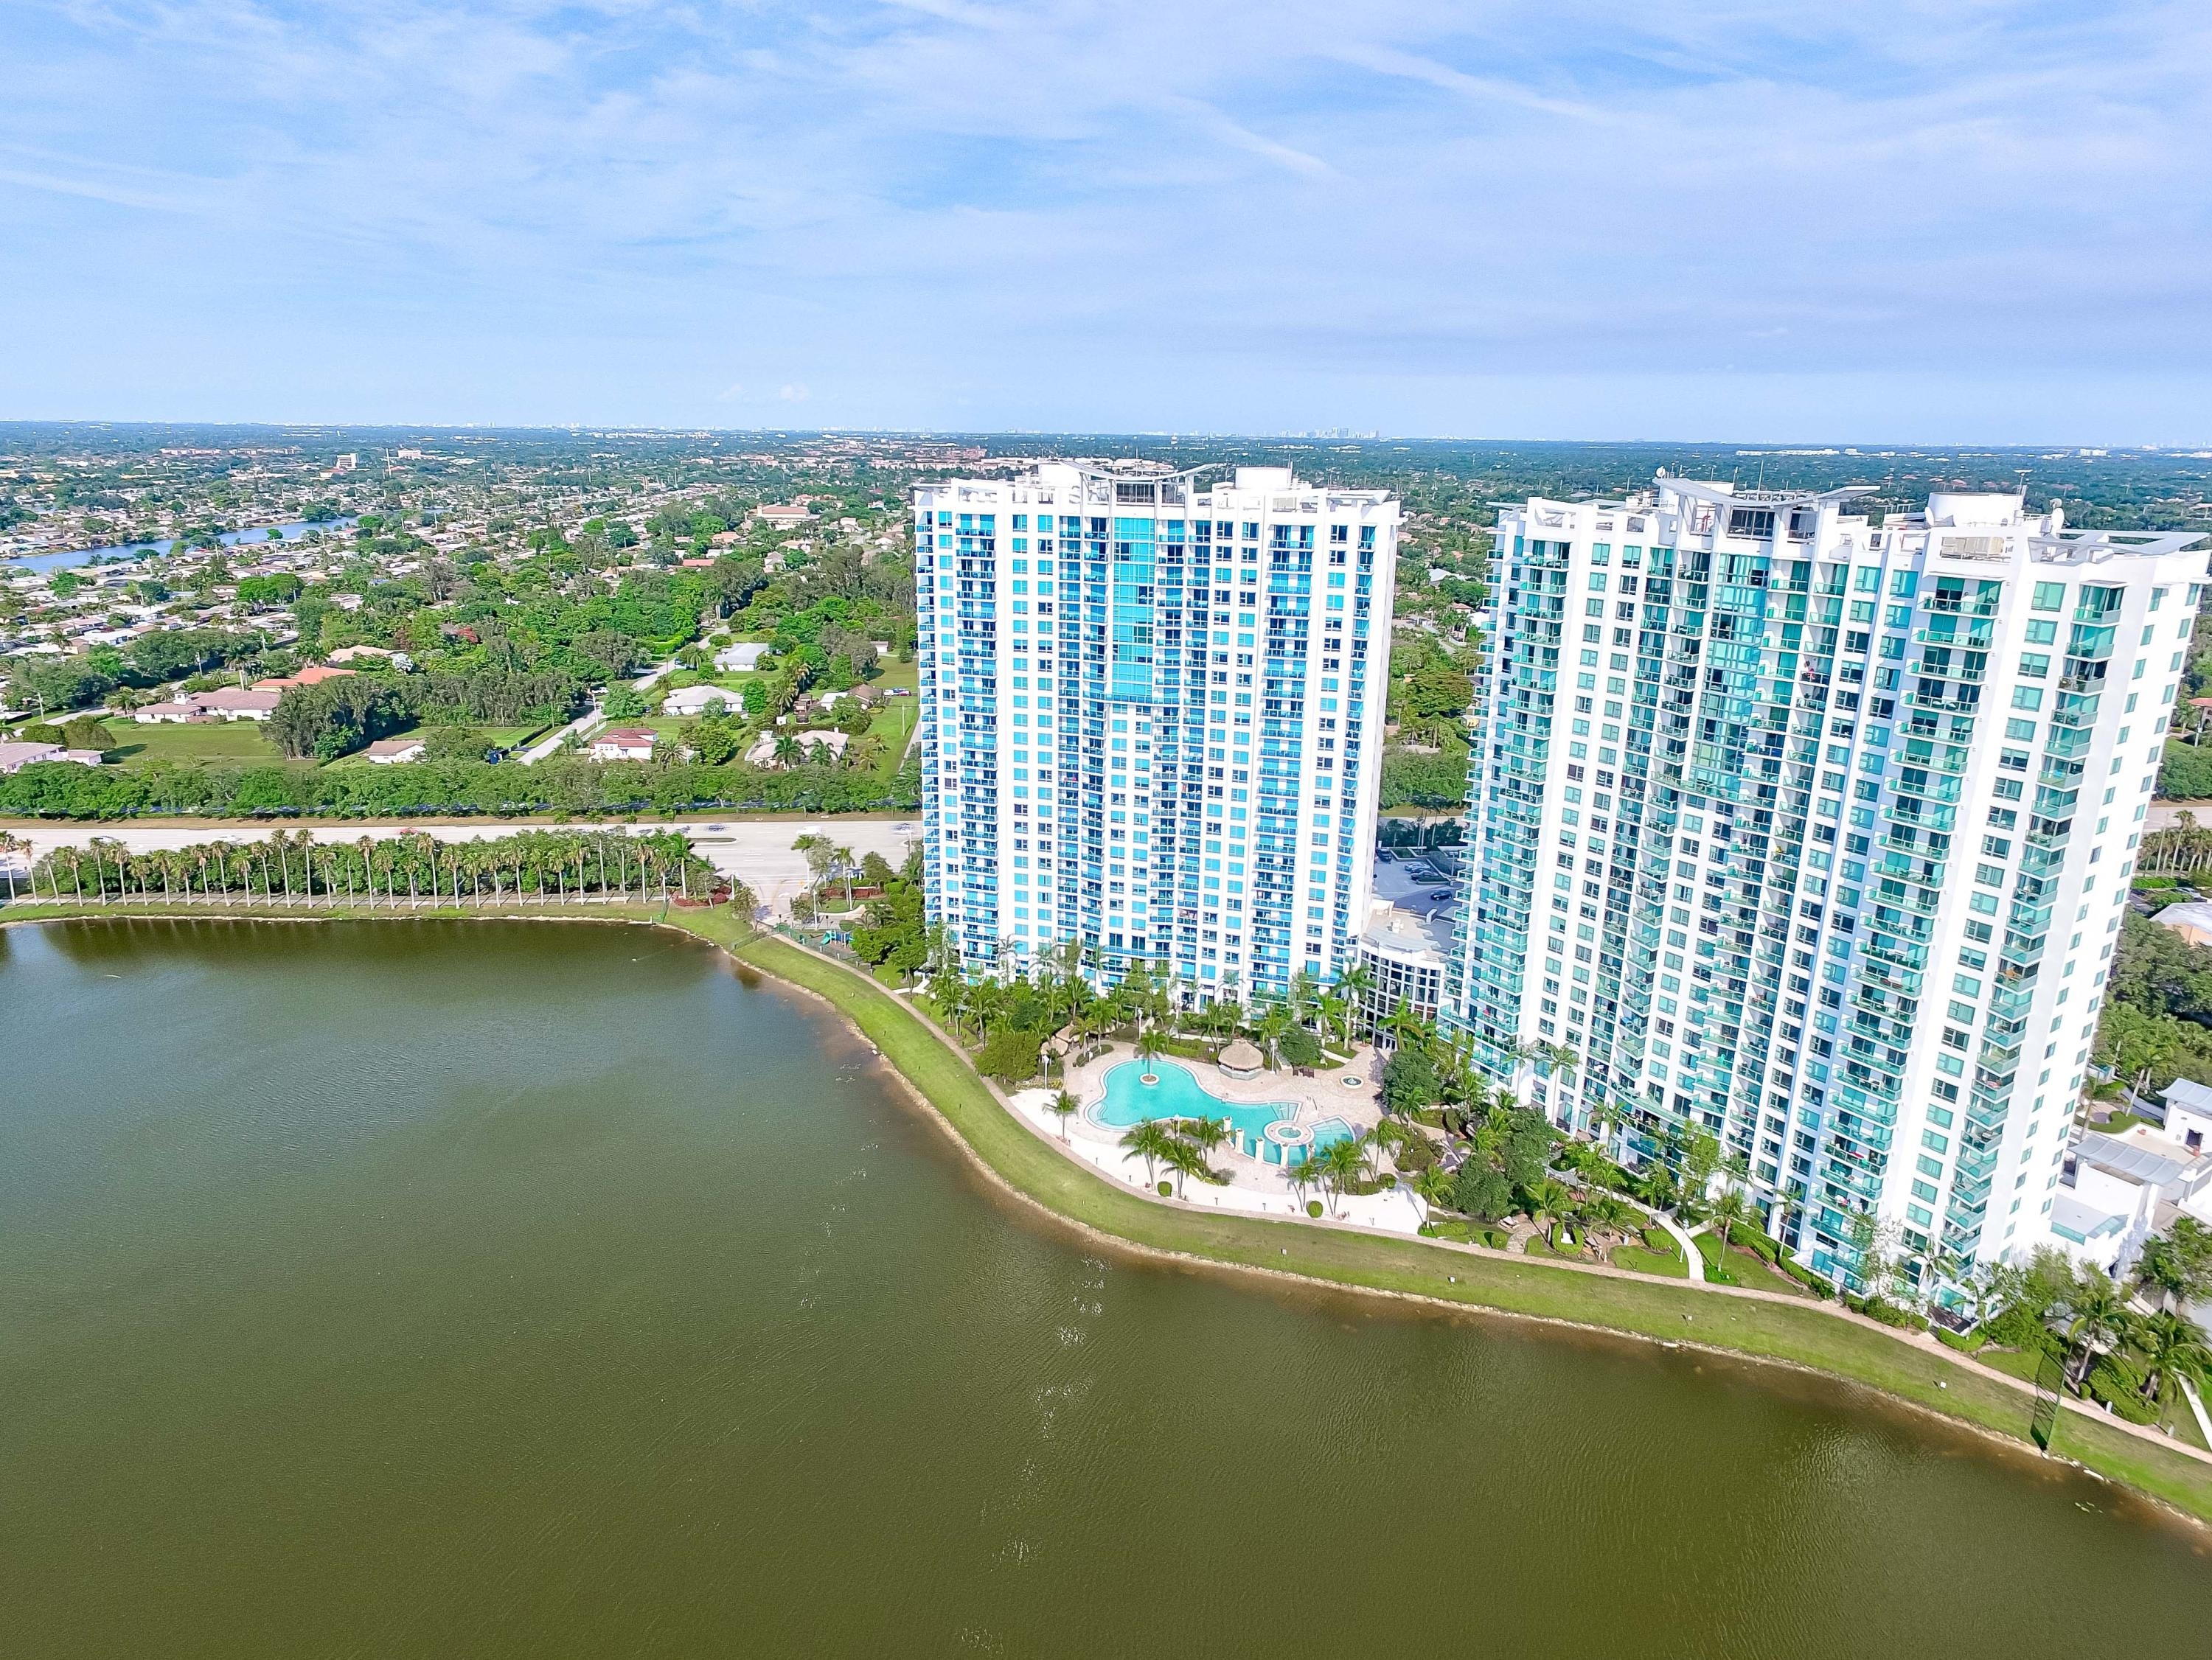 Aerial picture - pool on the lake